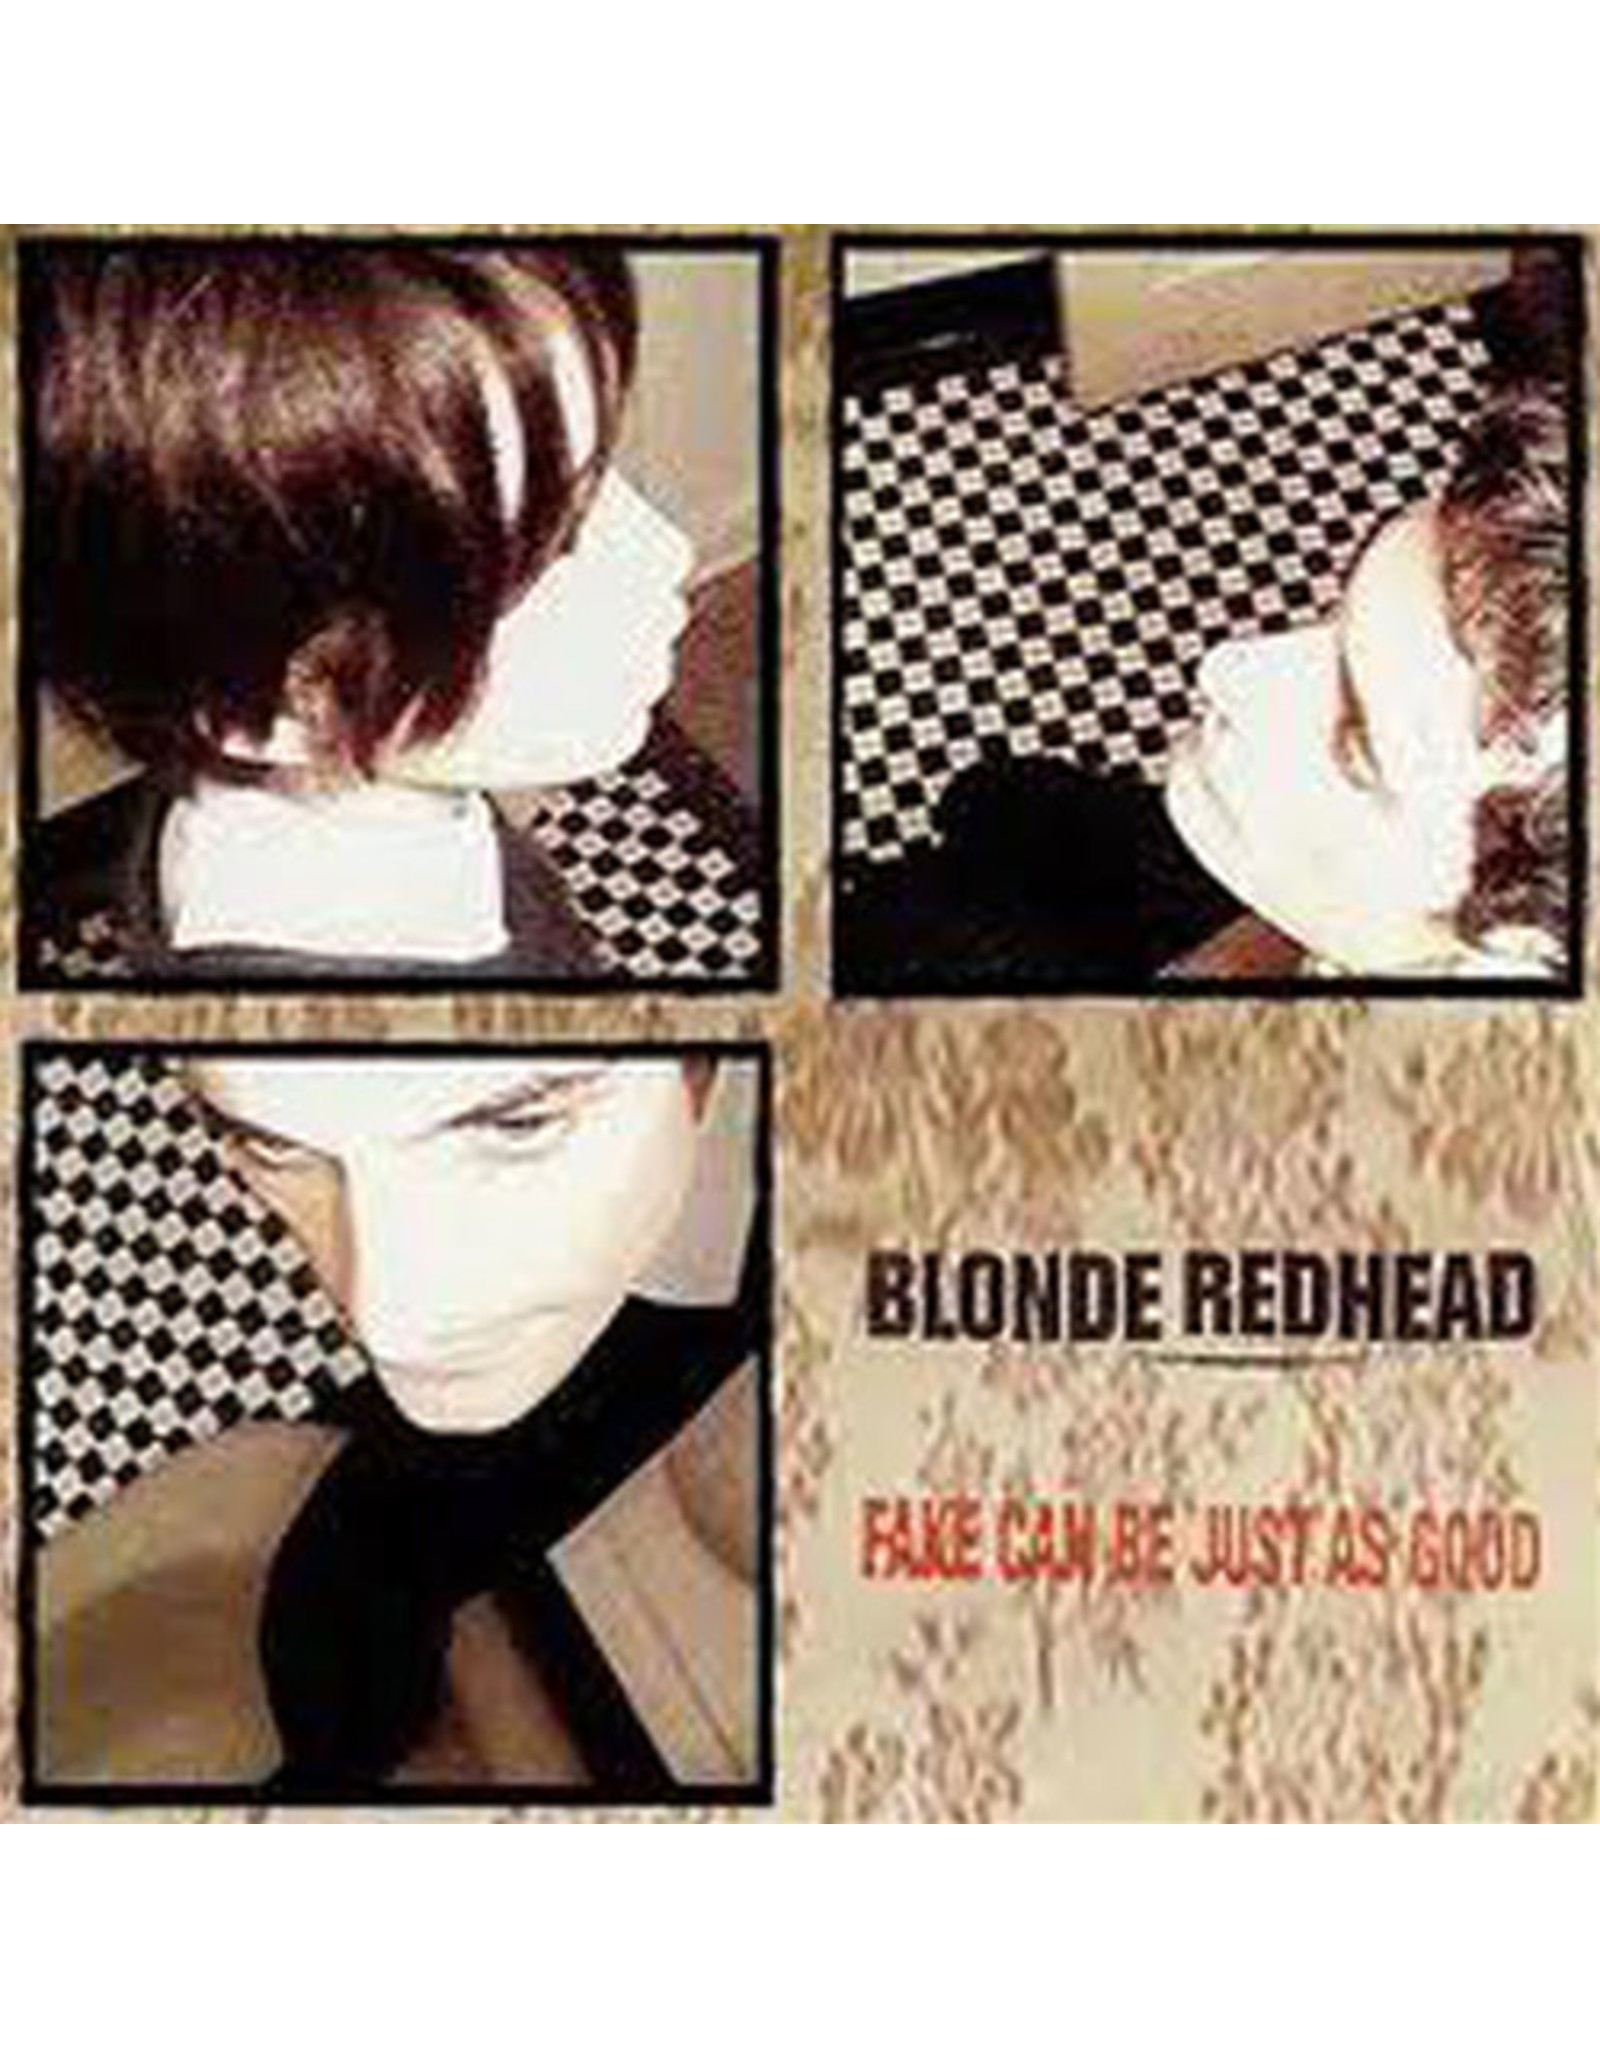 Touch & Go Blonde Redhead: Fake Can Be Just As Good LP